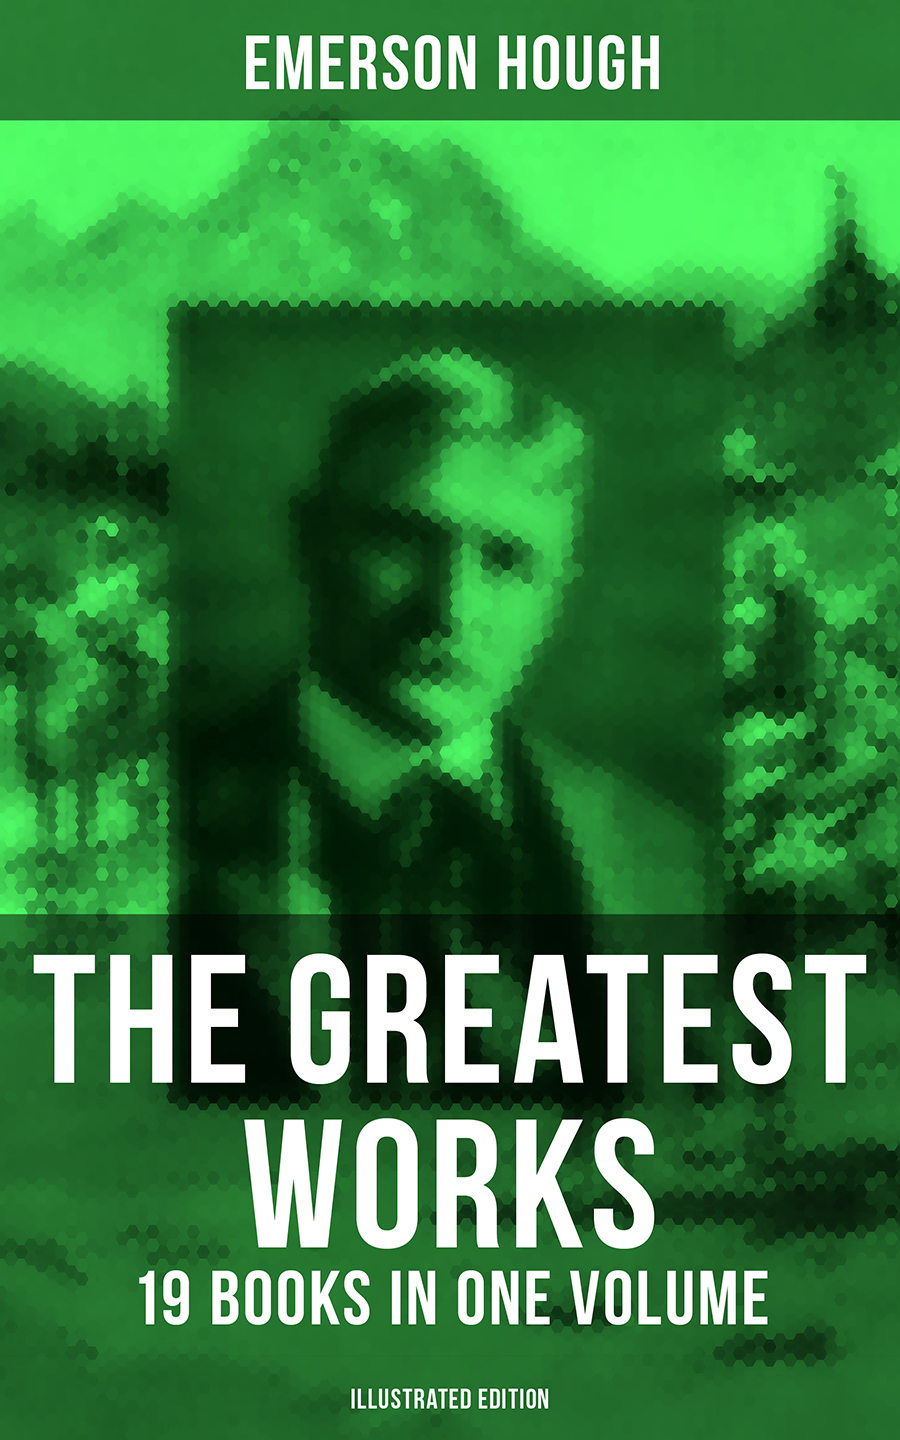 Emerson Hough The Greatest Works of Emerson Hough – 19 Books in One Volume (Illustrated Edition)